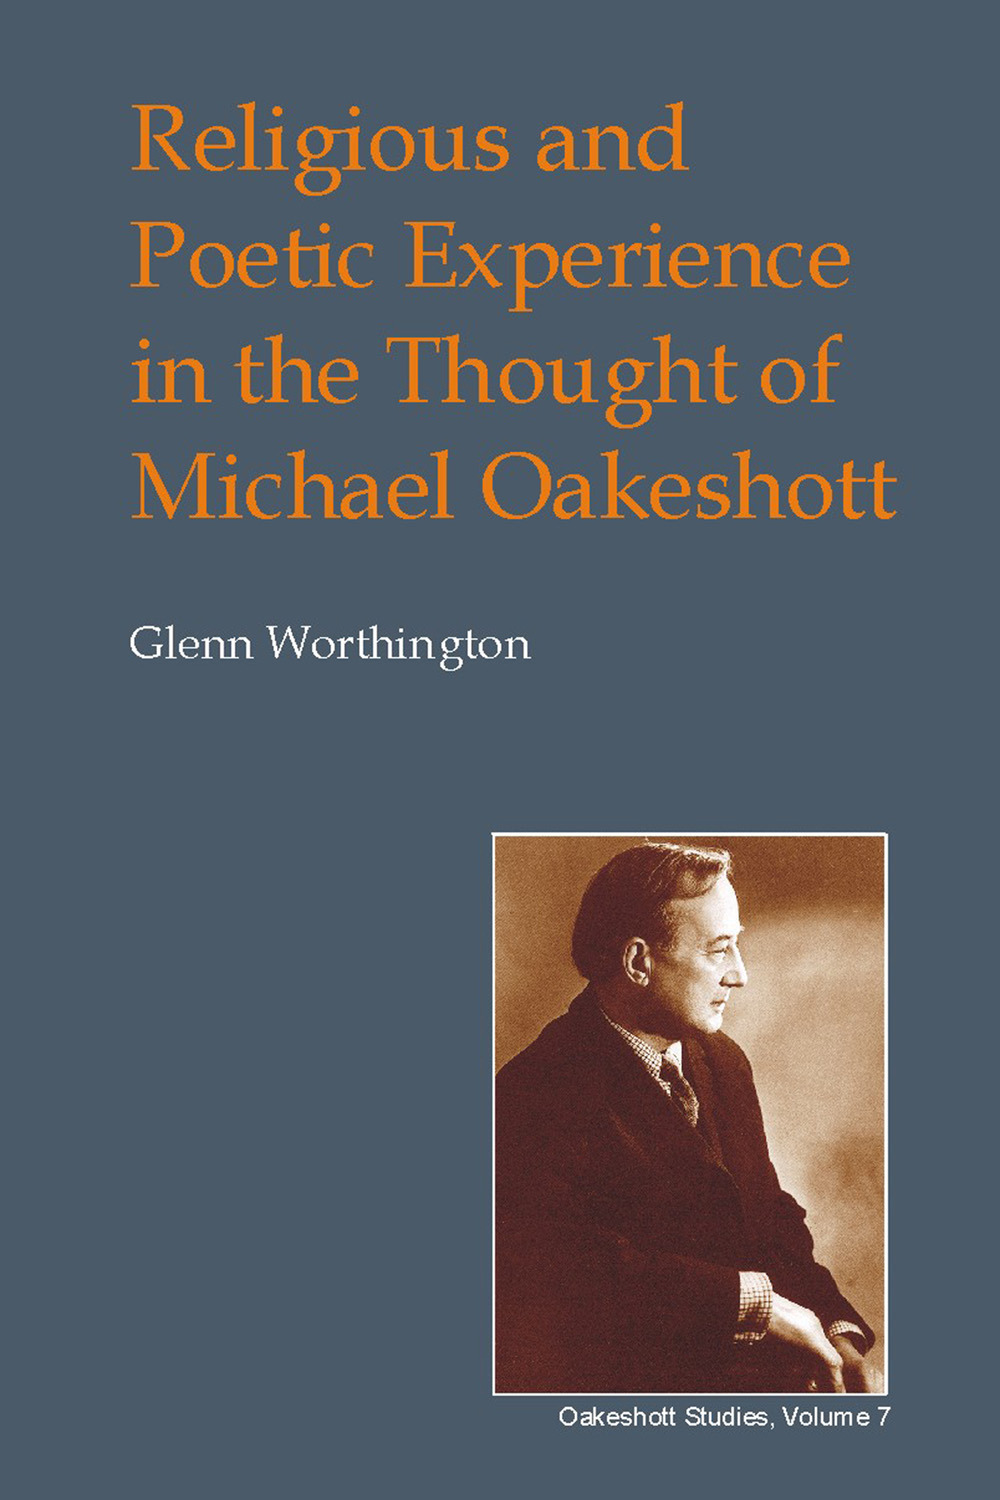 Religious and Poetic Experience in the Thought of Michael Oakeshott